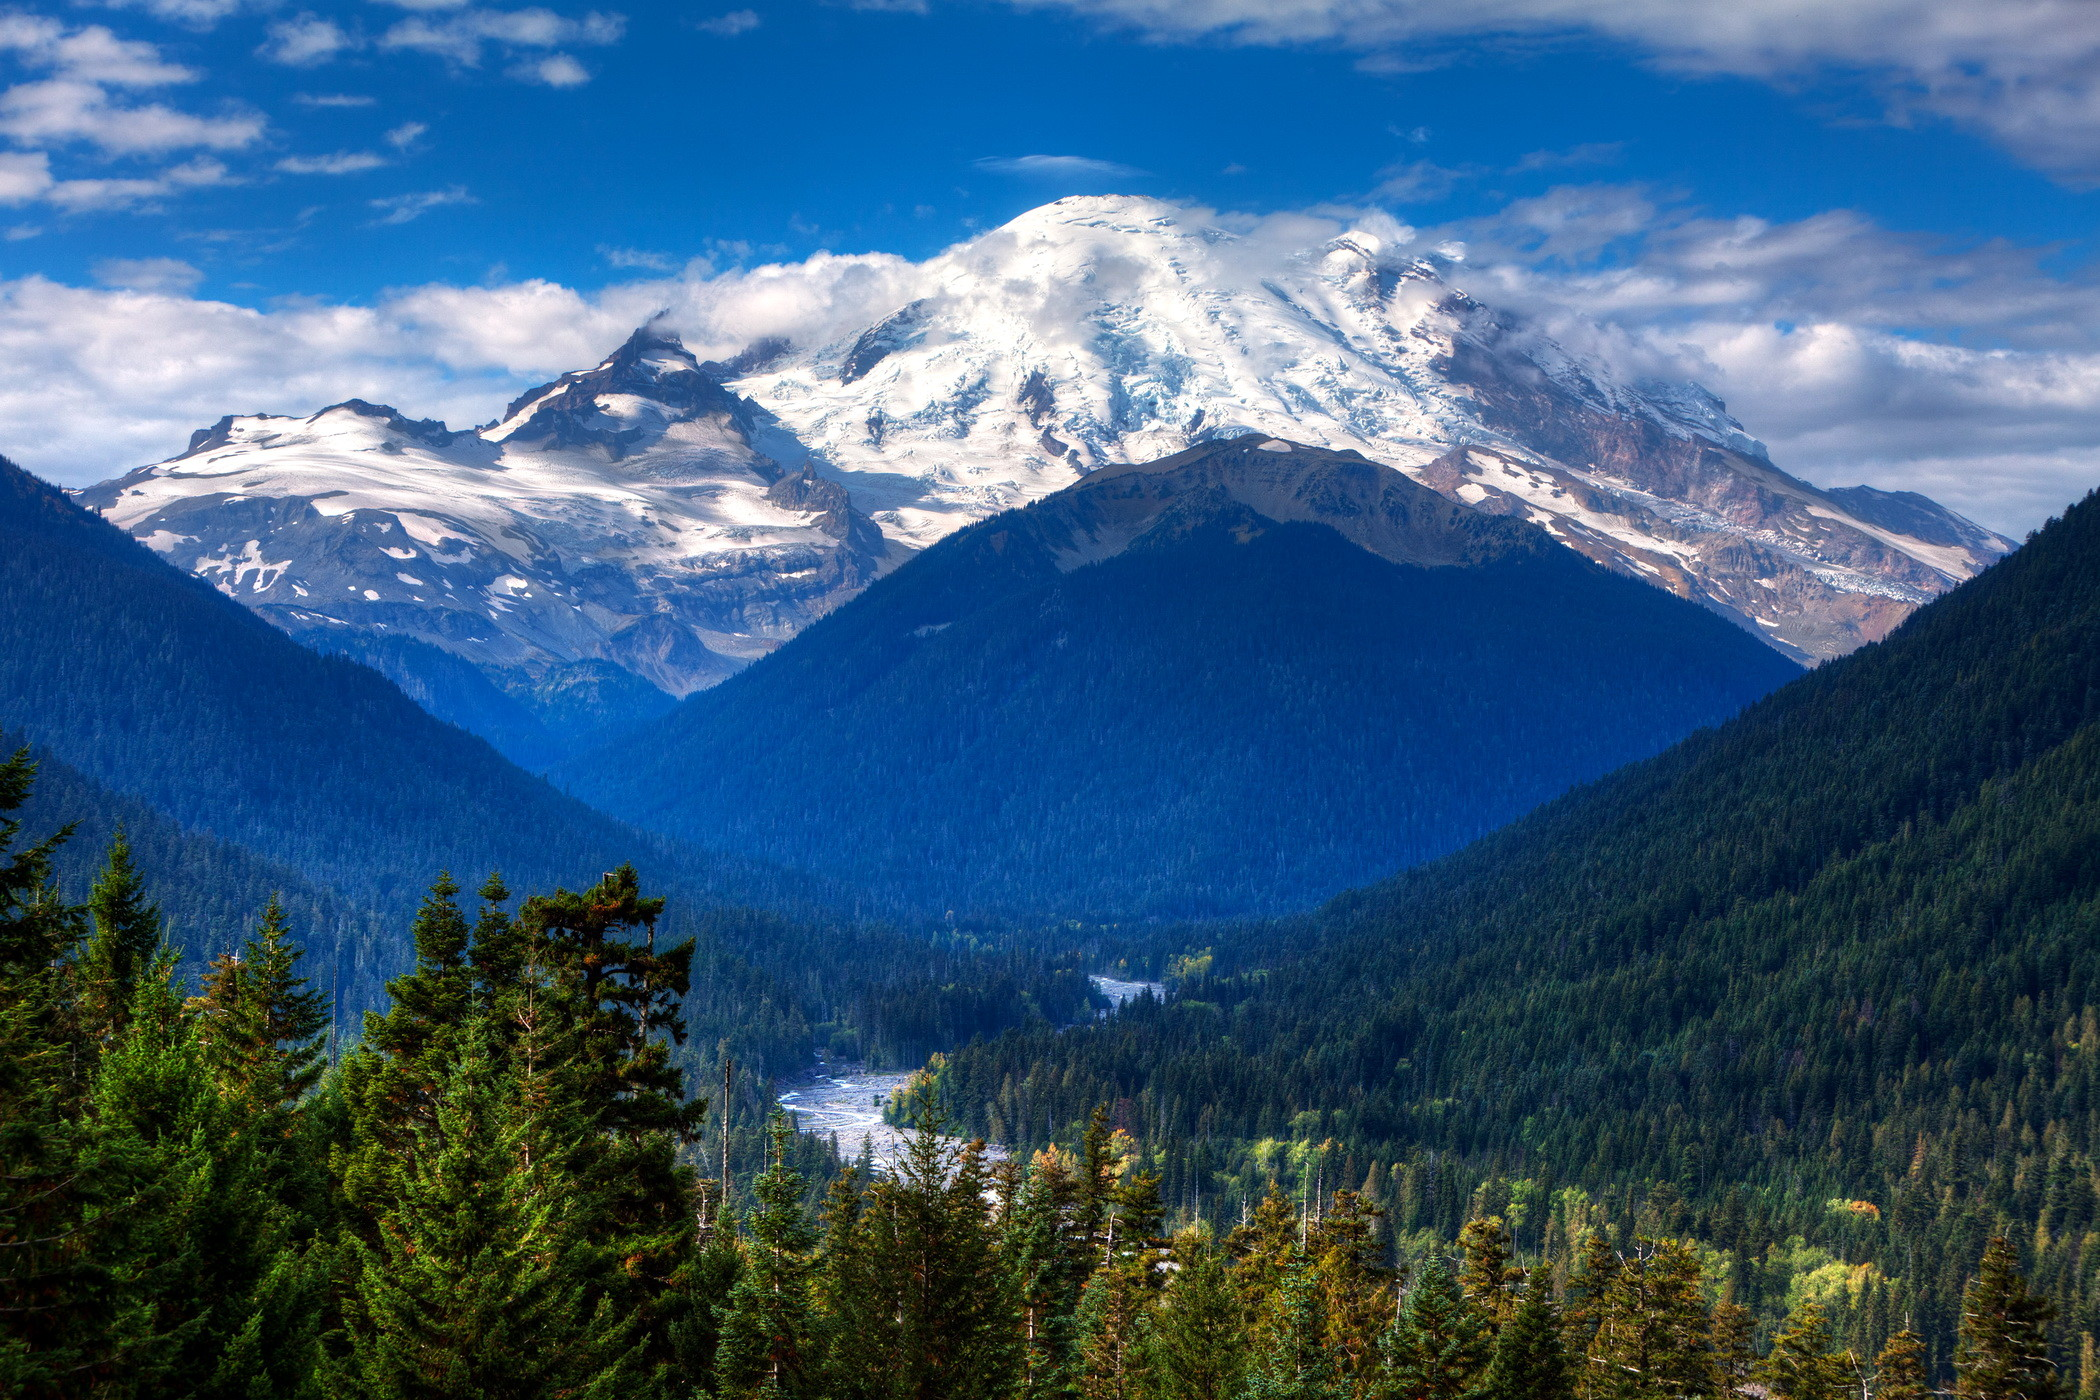 2100x1400 Images Mount Rainier Park USA Washington Nature Mountains Parks